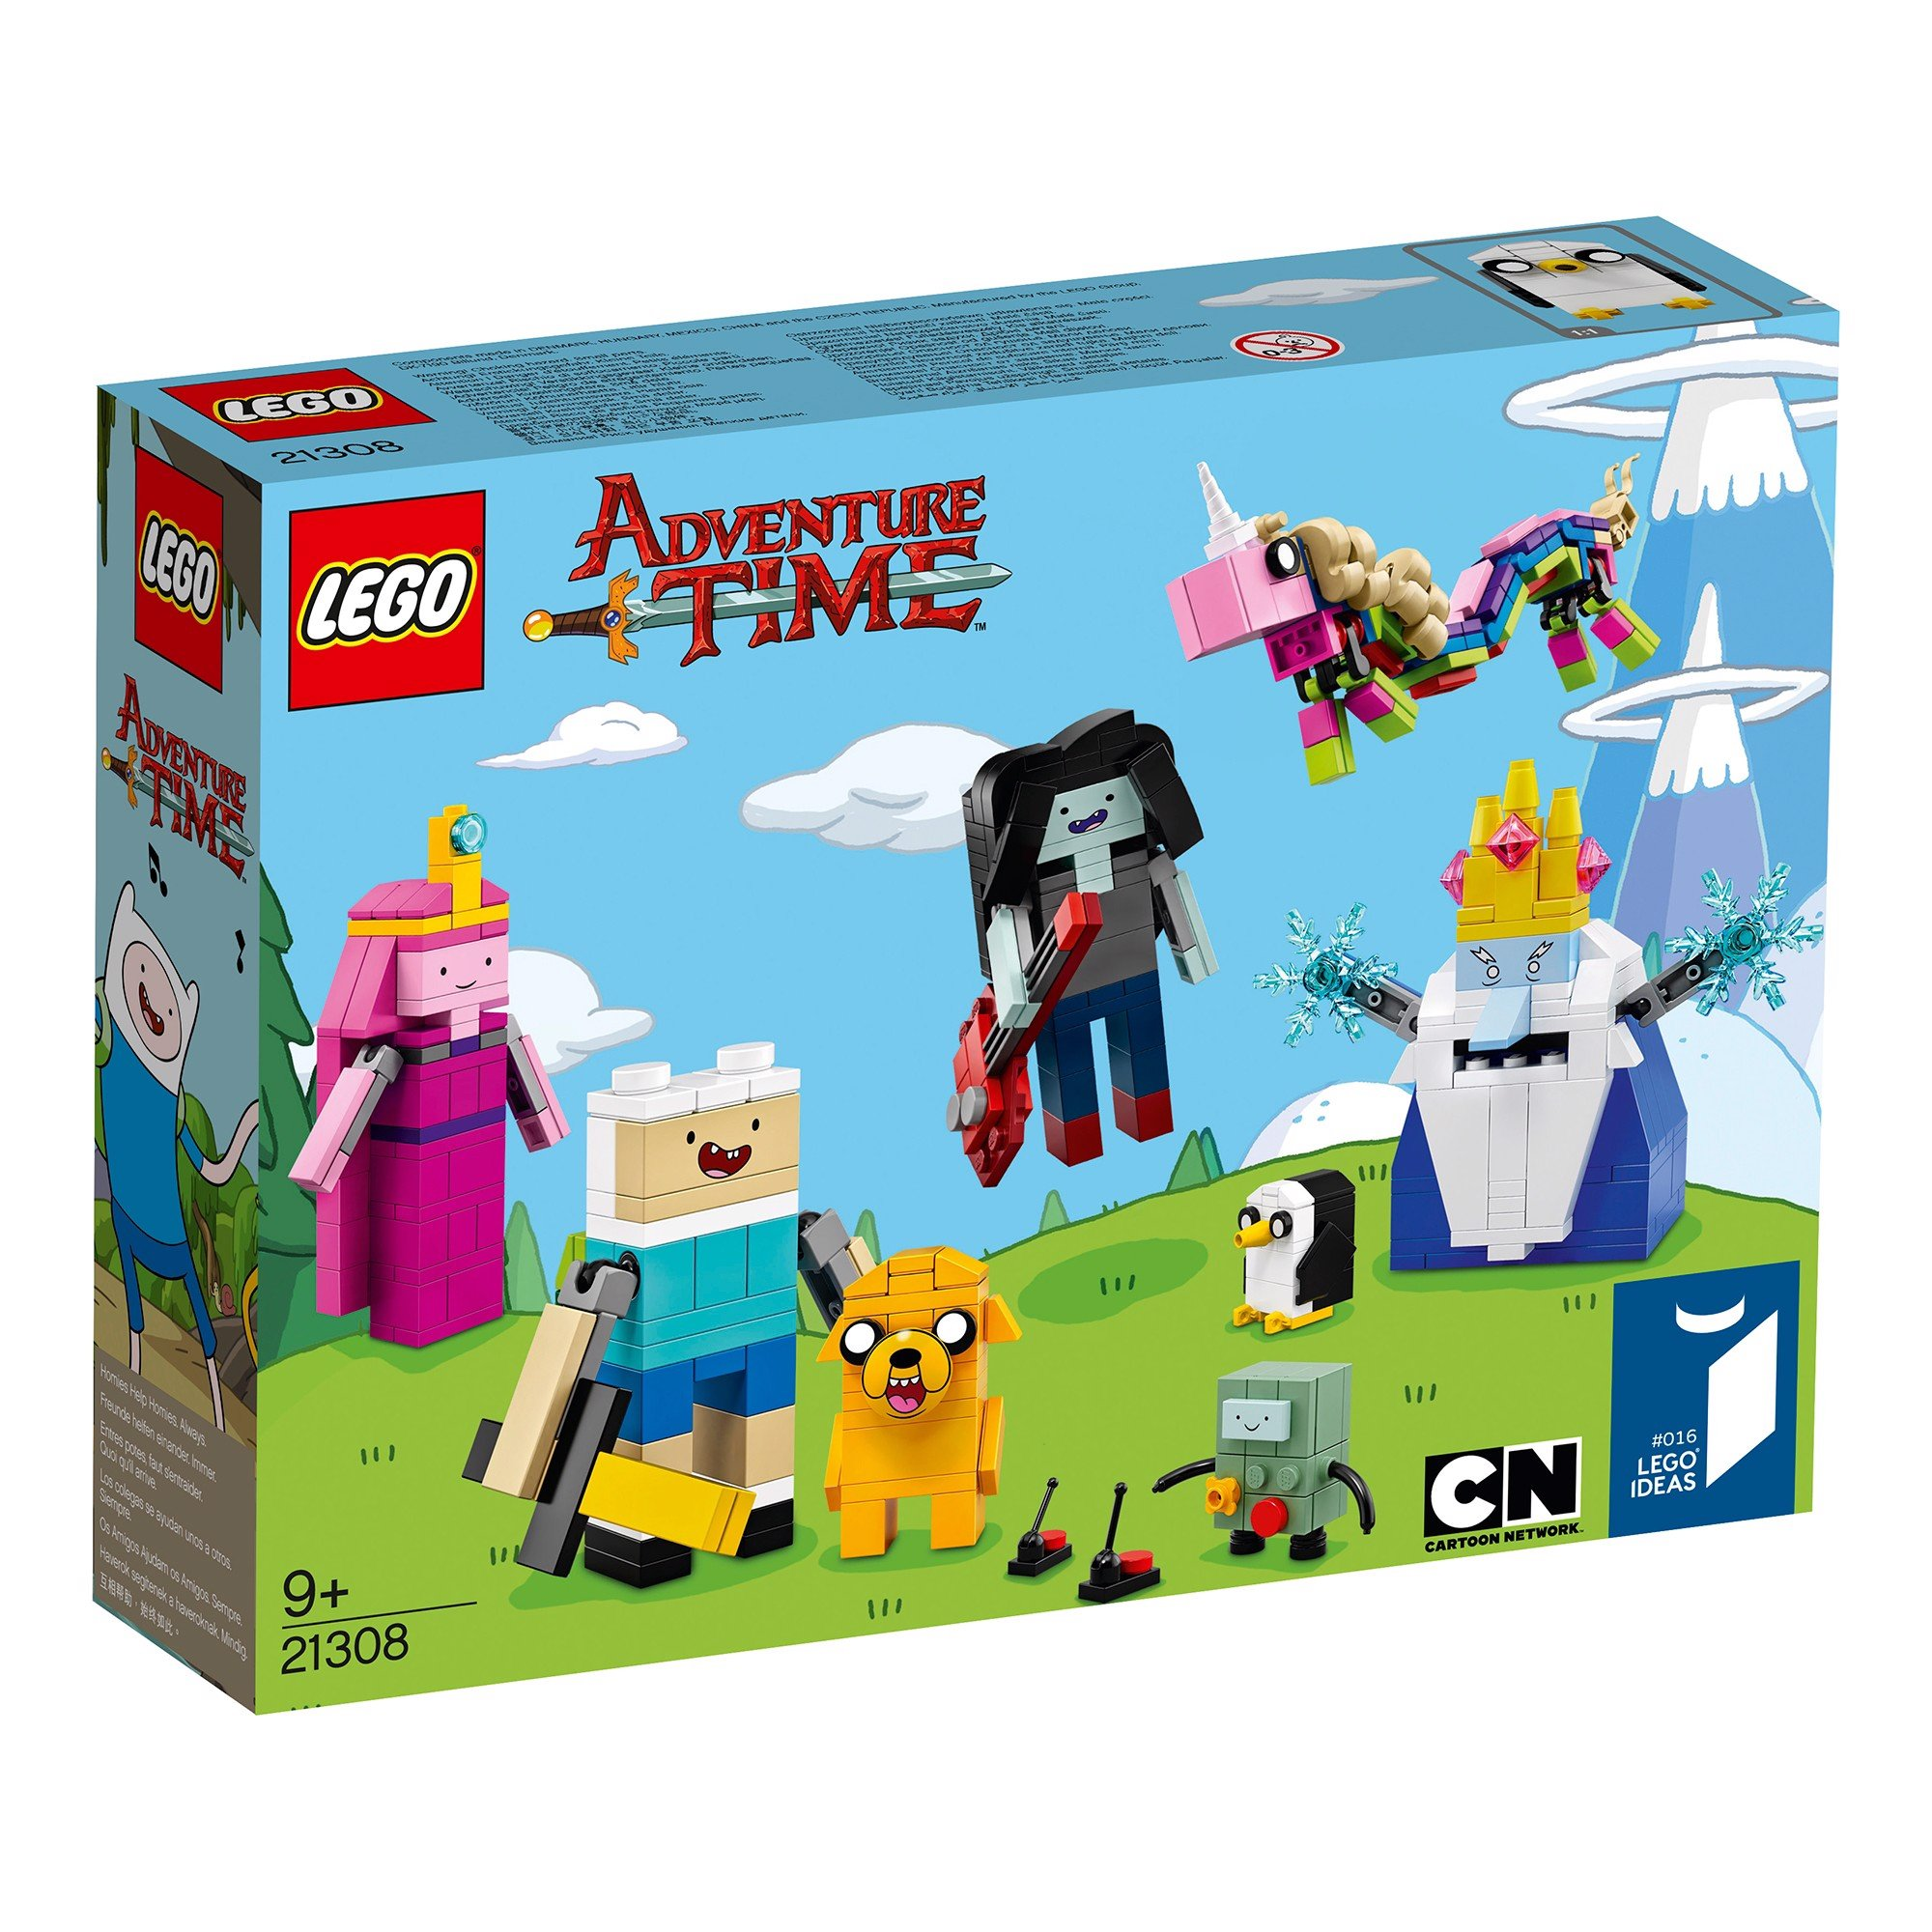 [ORDER] LEGO Ideas 21308 Adventure Time